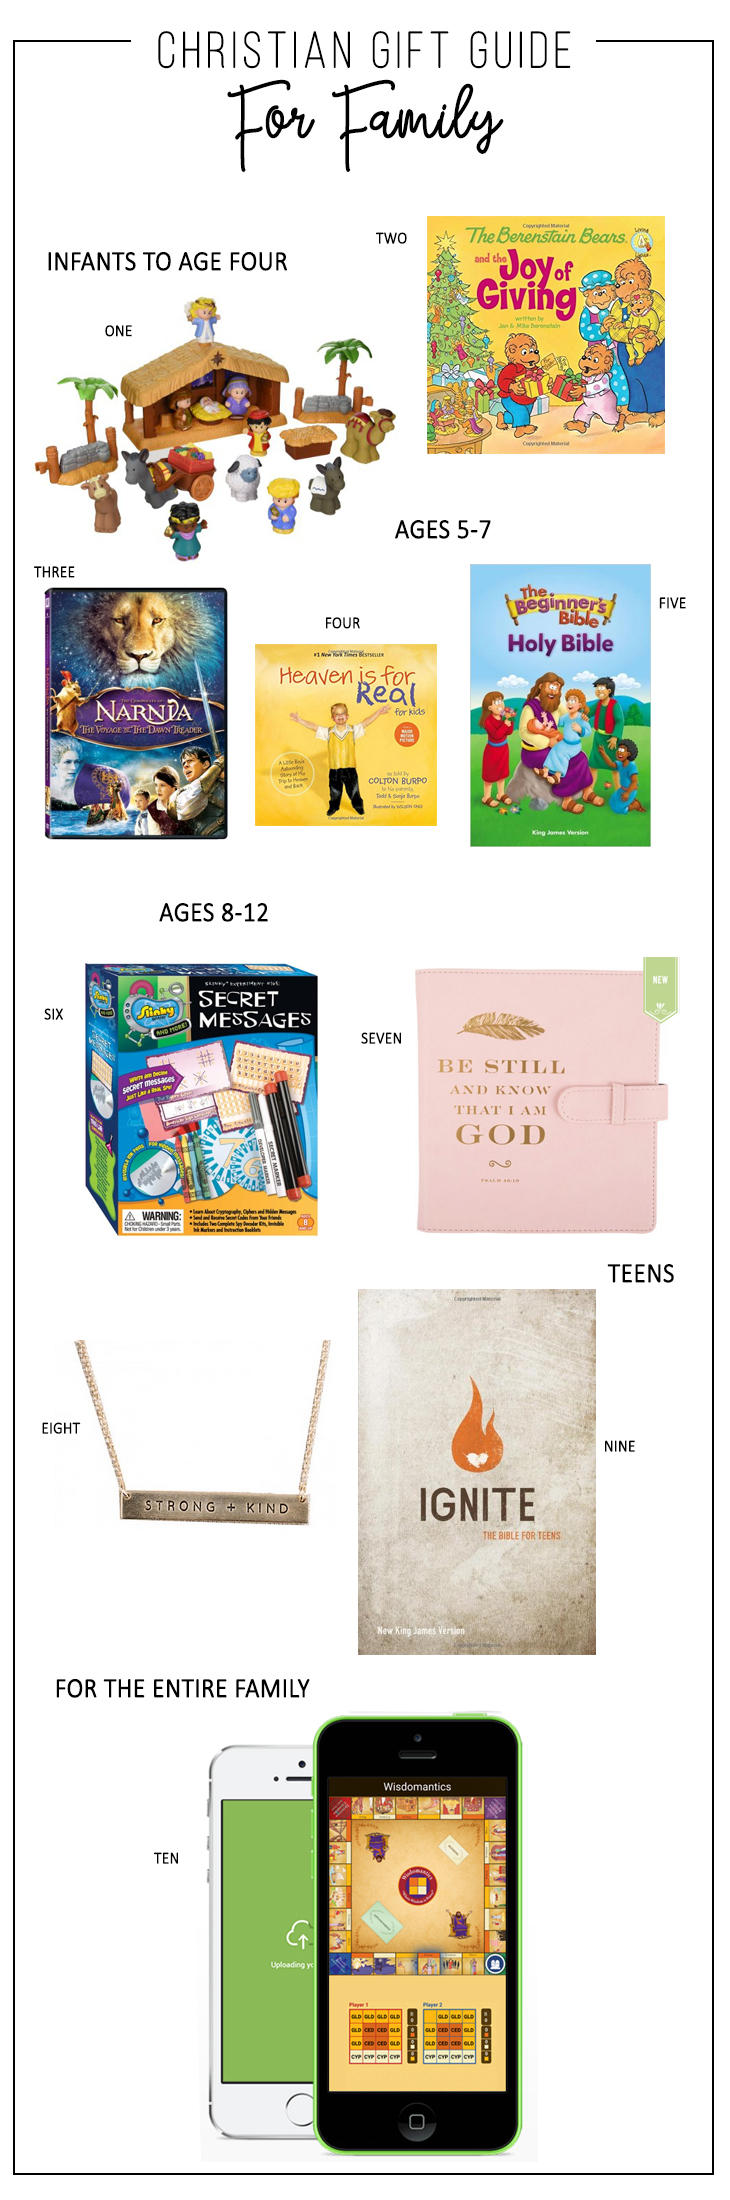 Ultimate Christian Gift Guide infants kids teens entire family